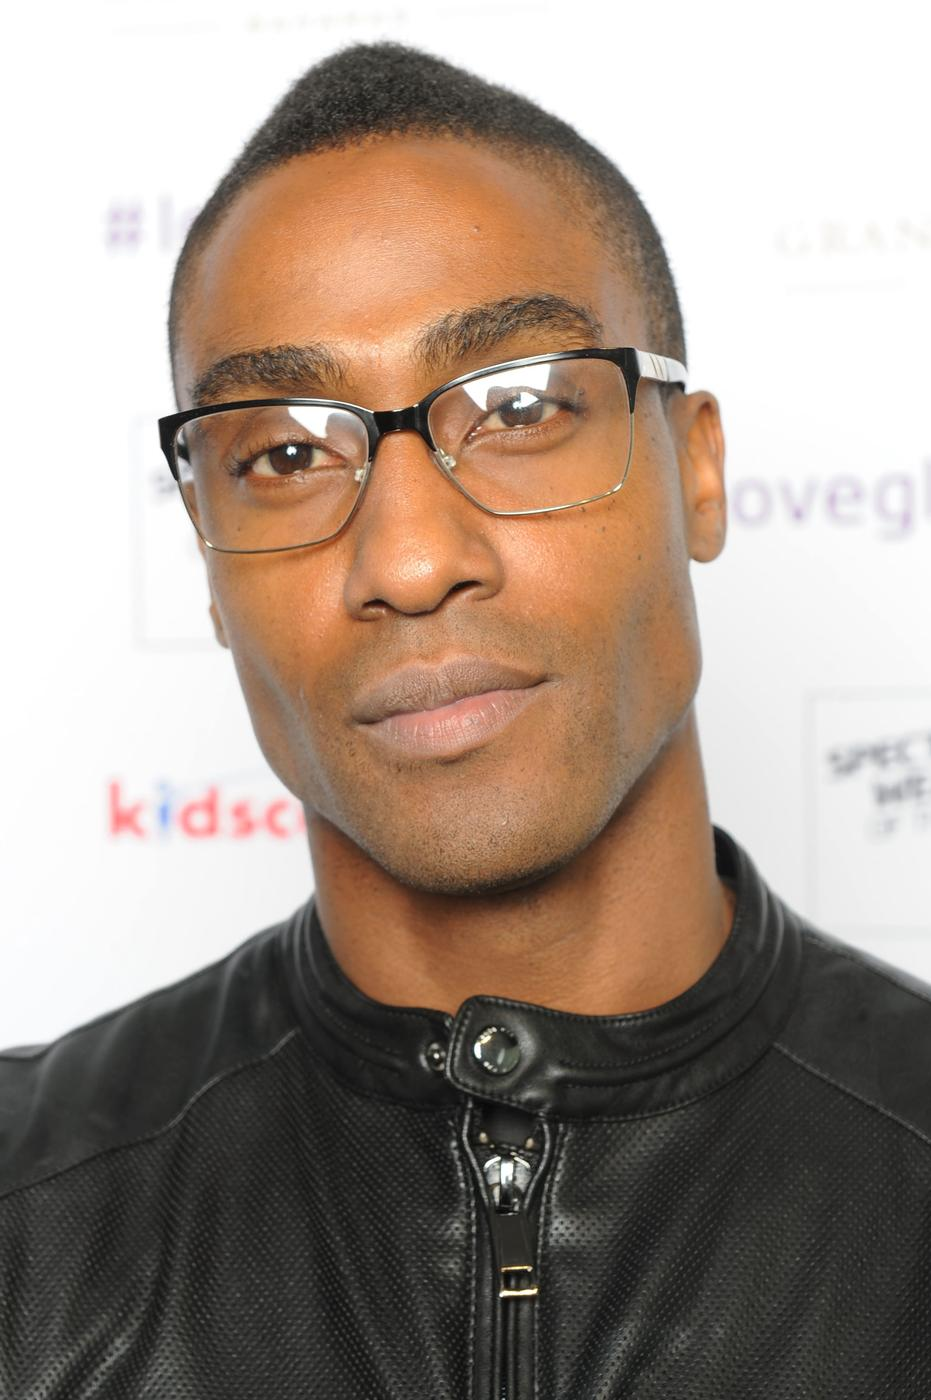 Strictly Come Dancing's Simon Webbe confirms new Blue album is 'done'